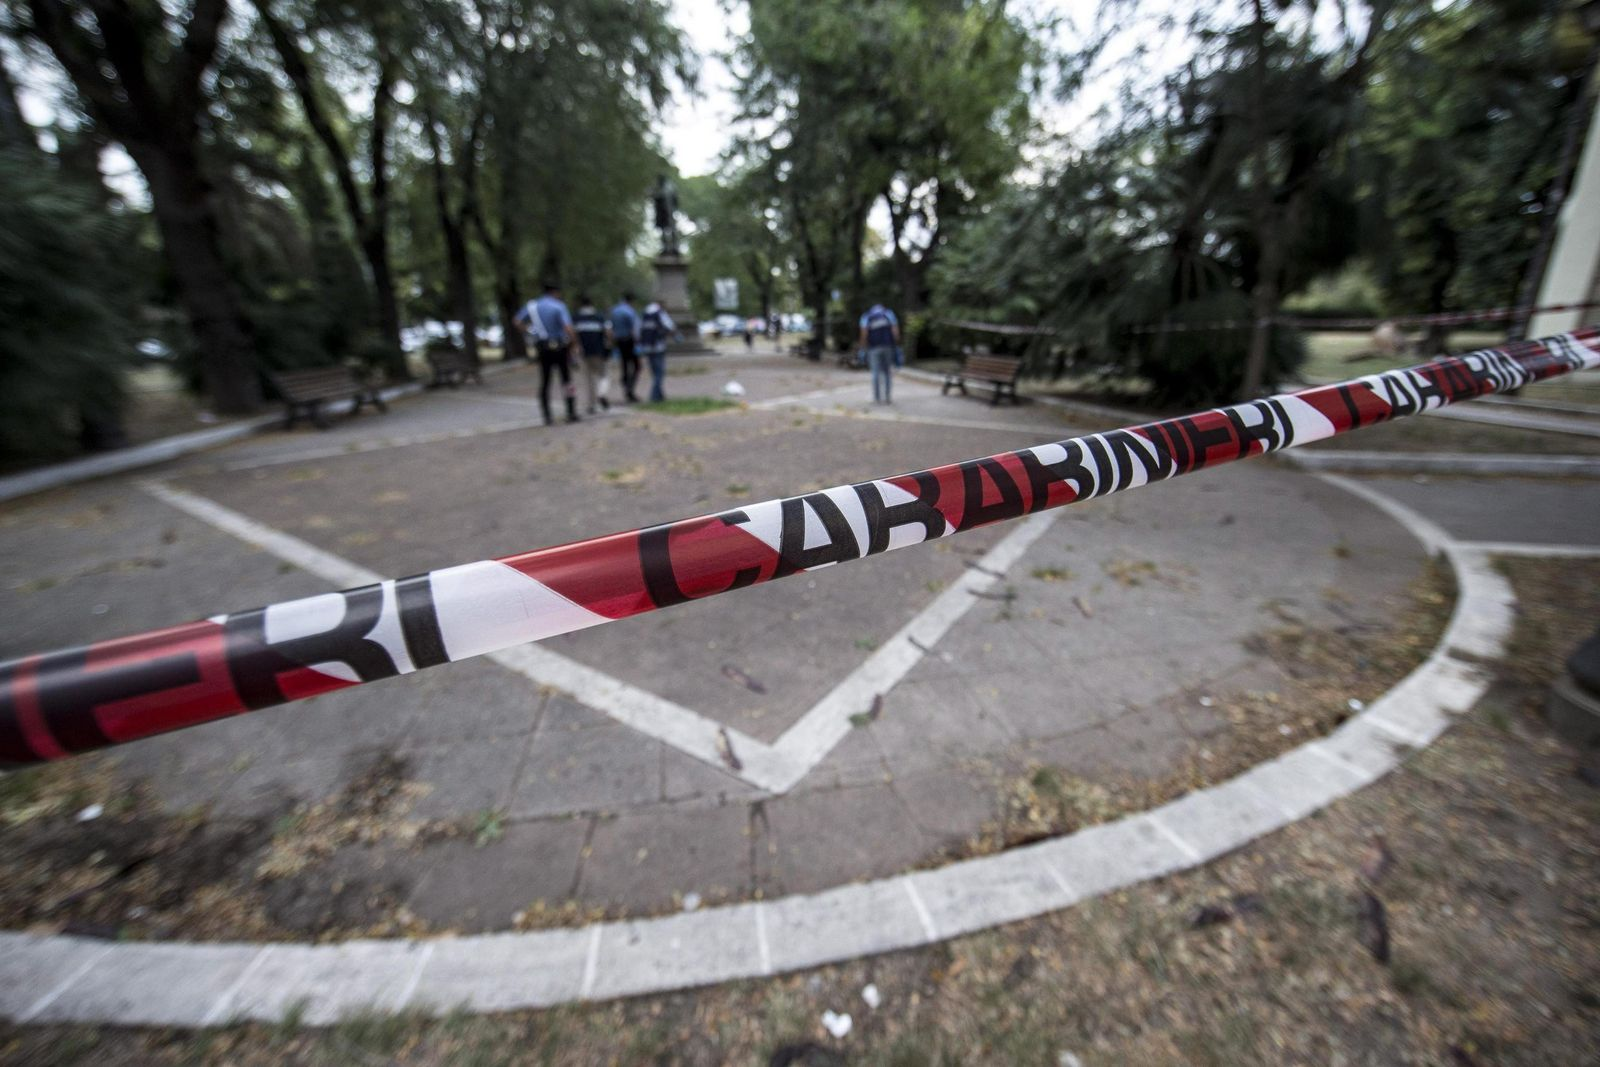 Four Carabinieri stabbed by man in Rome